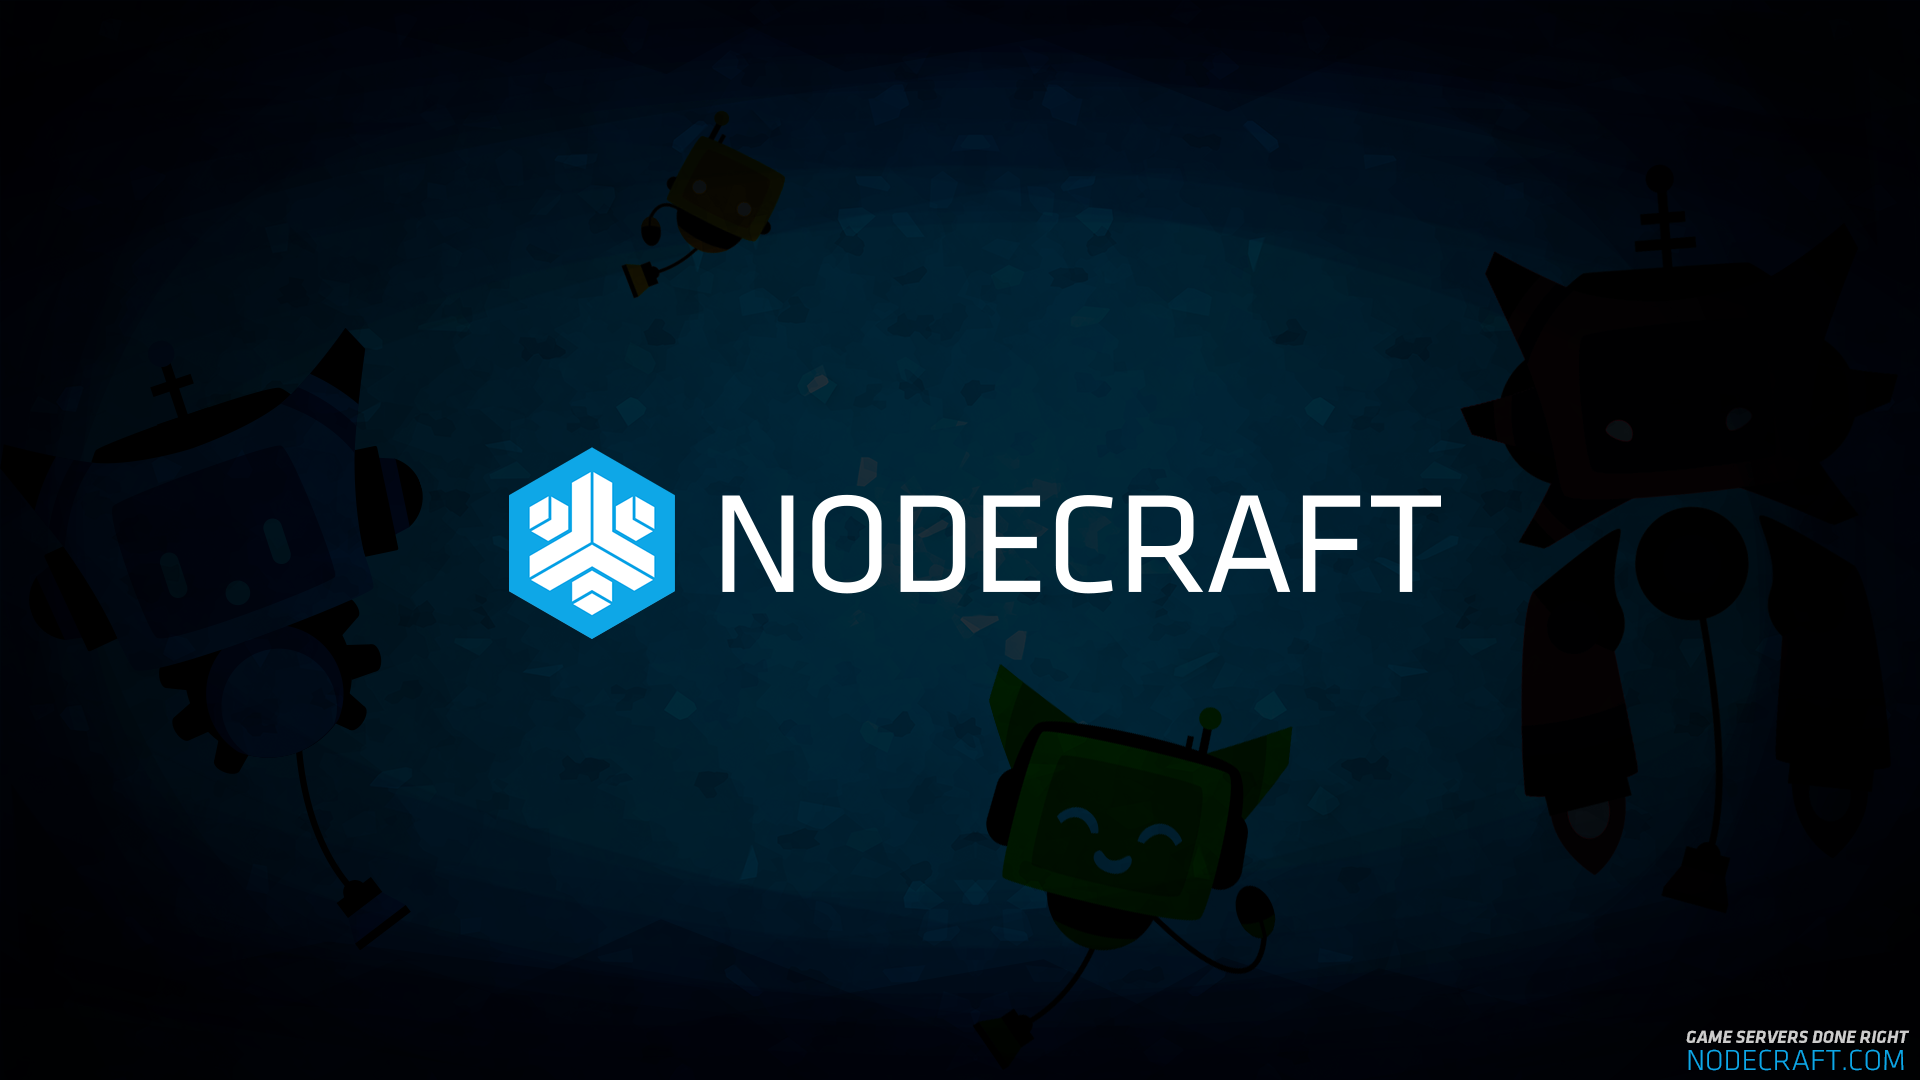 New Nodecraft Logo